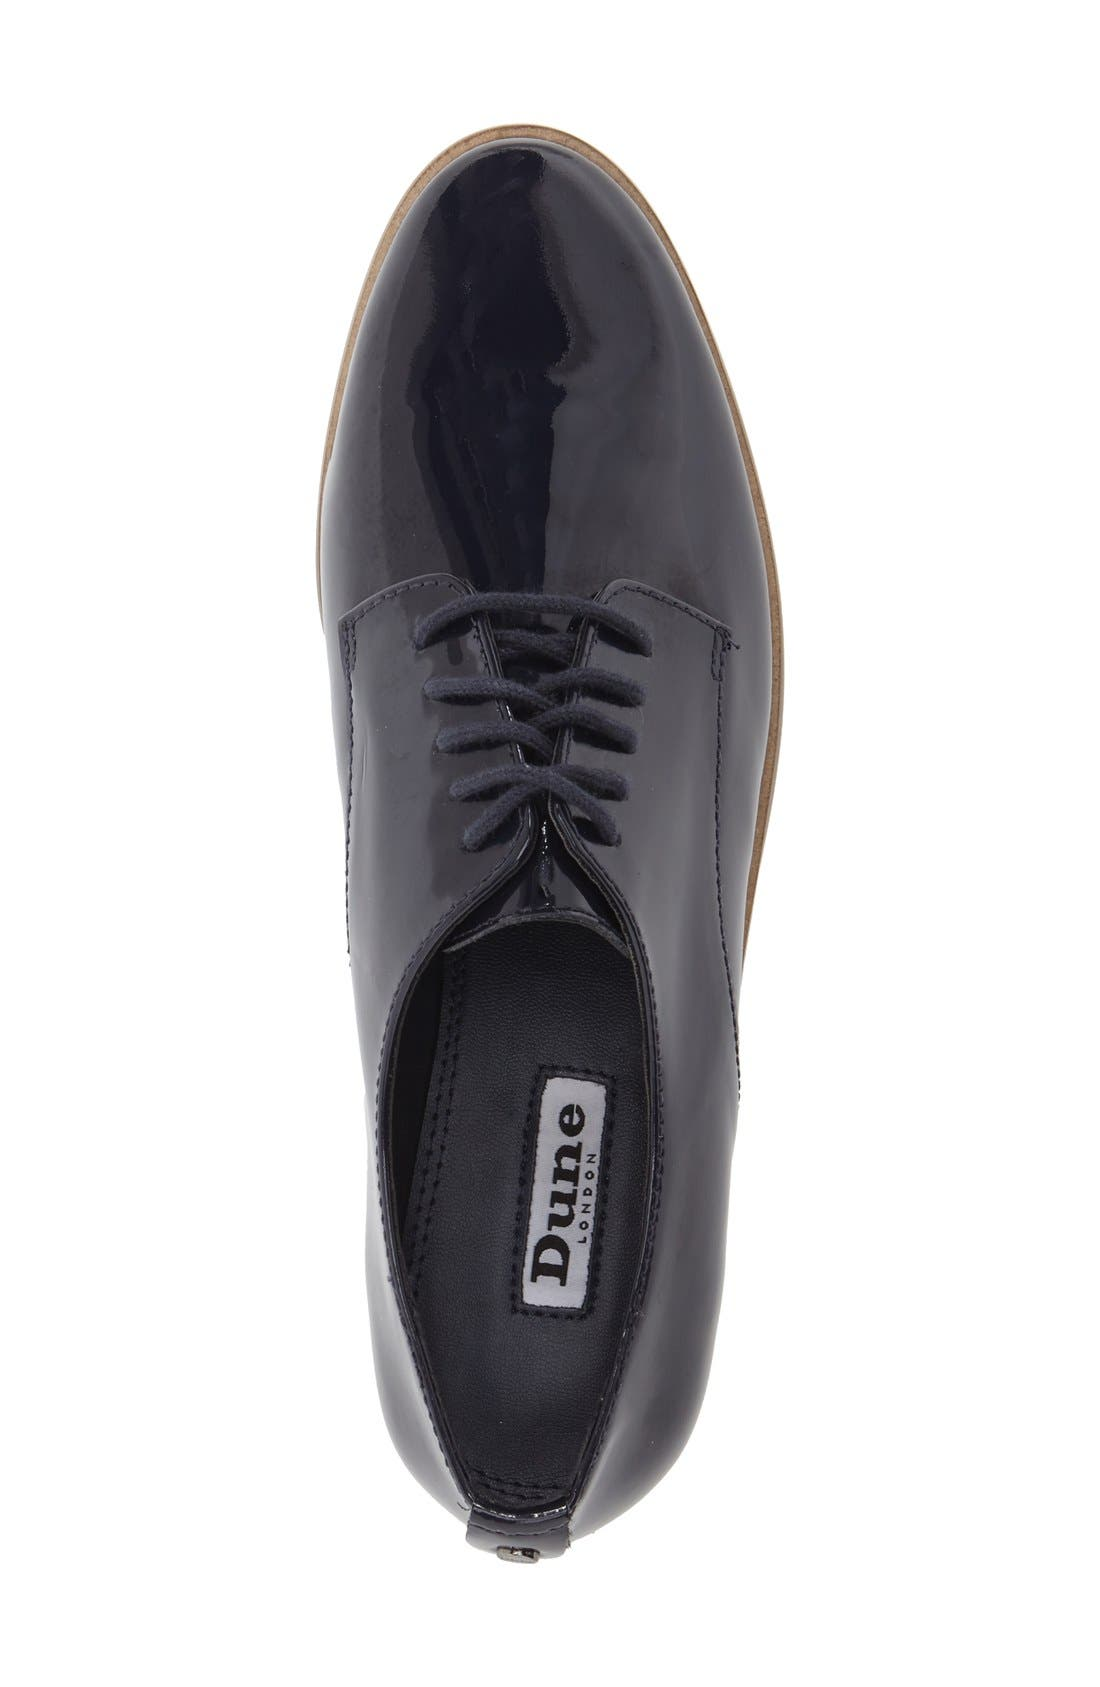 'Flossy' Patent Leather Oxford,                             Alternate thumbnail 3, color,                             Navy Patent Leather